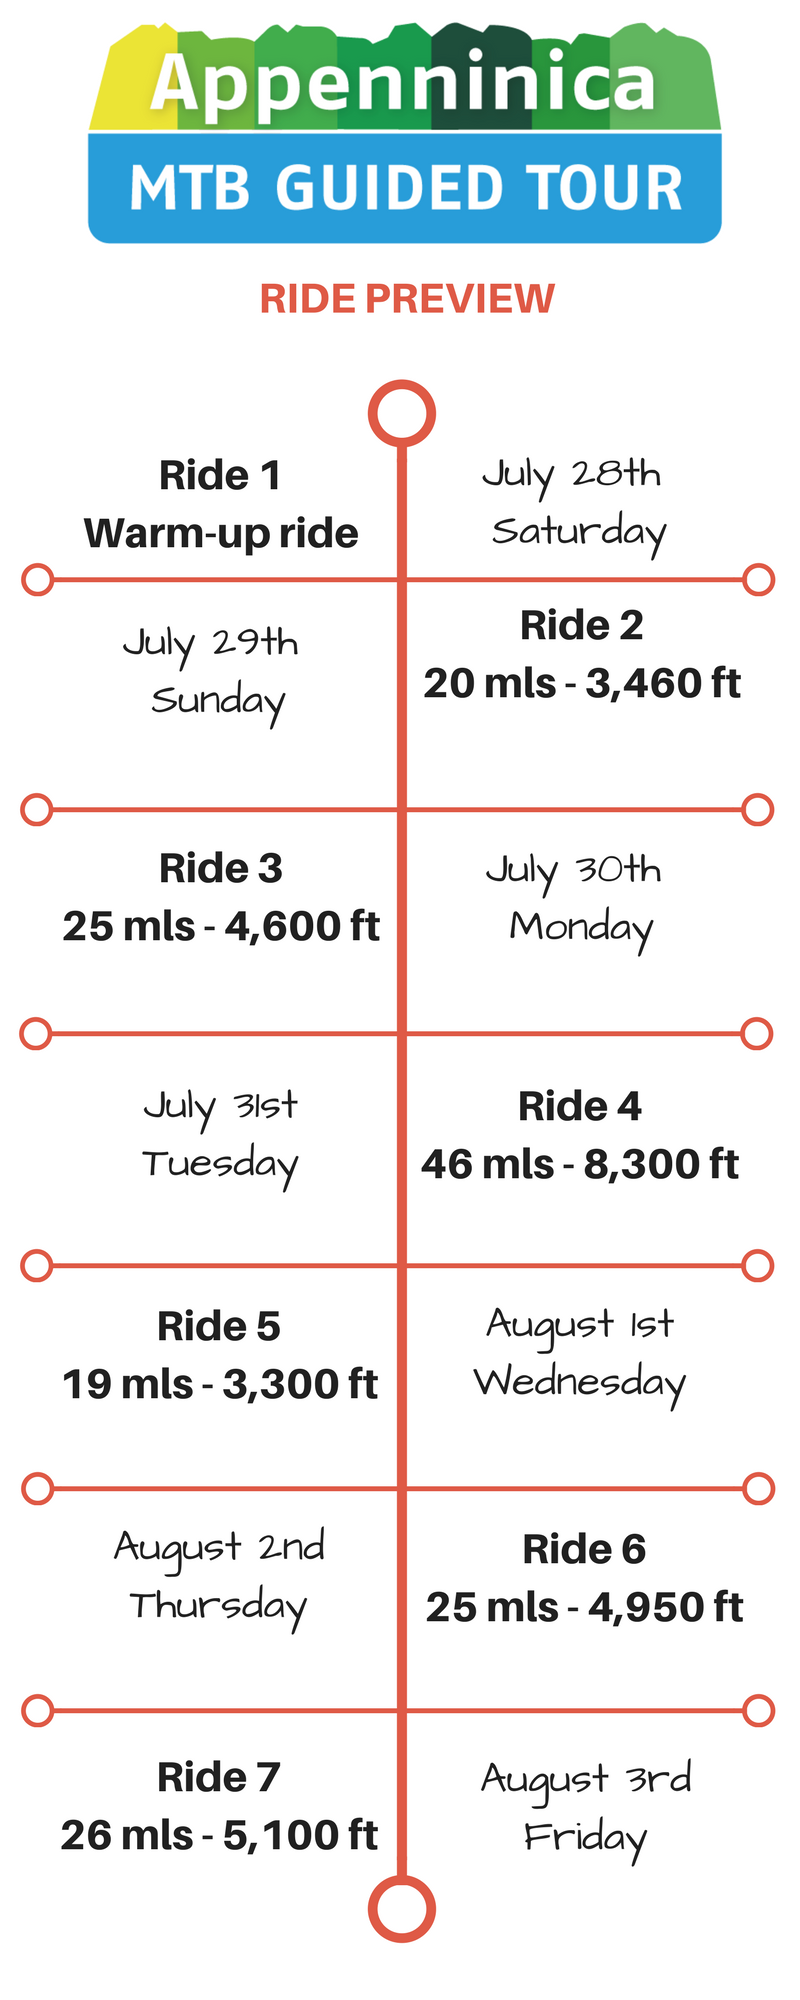 Rides Preview Appenninica.png